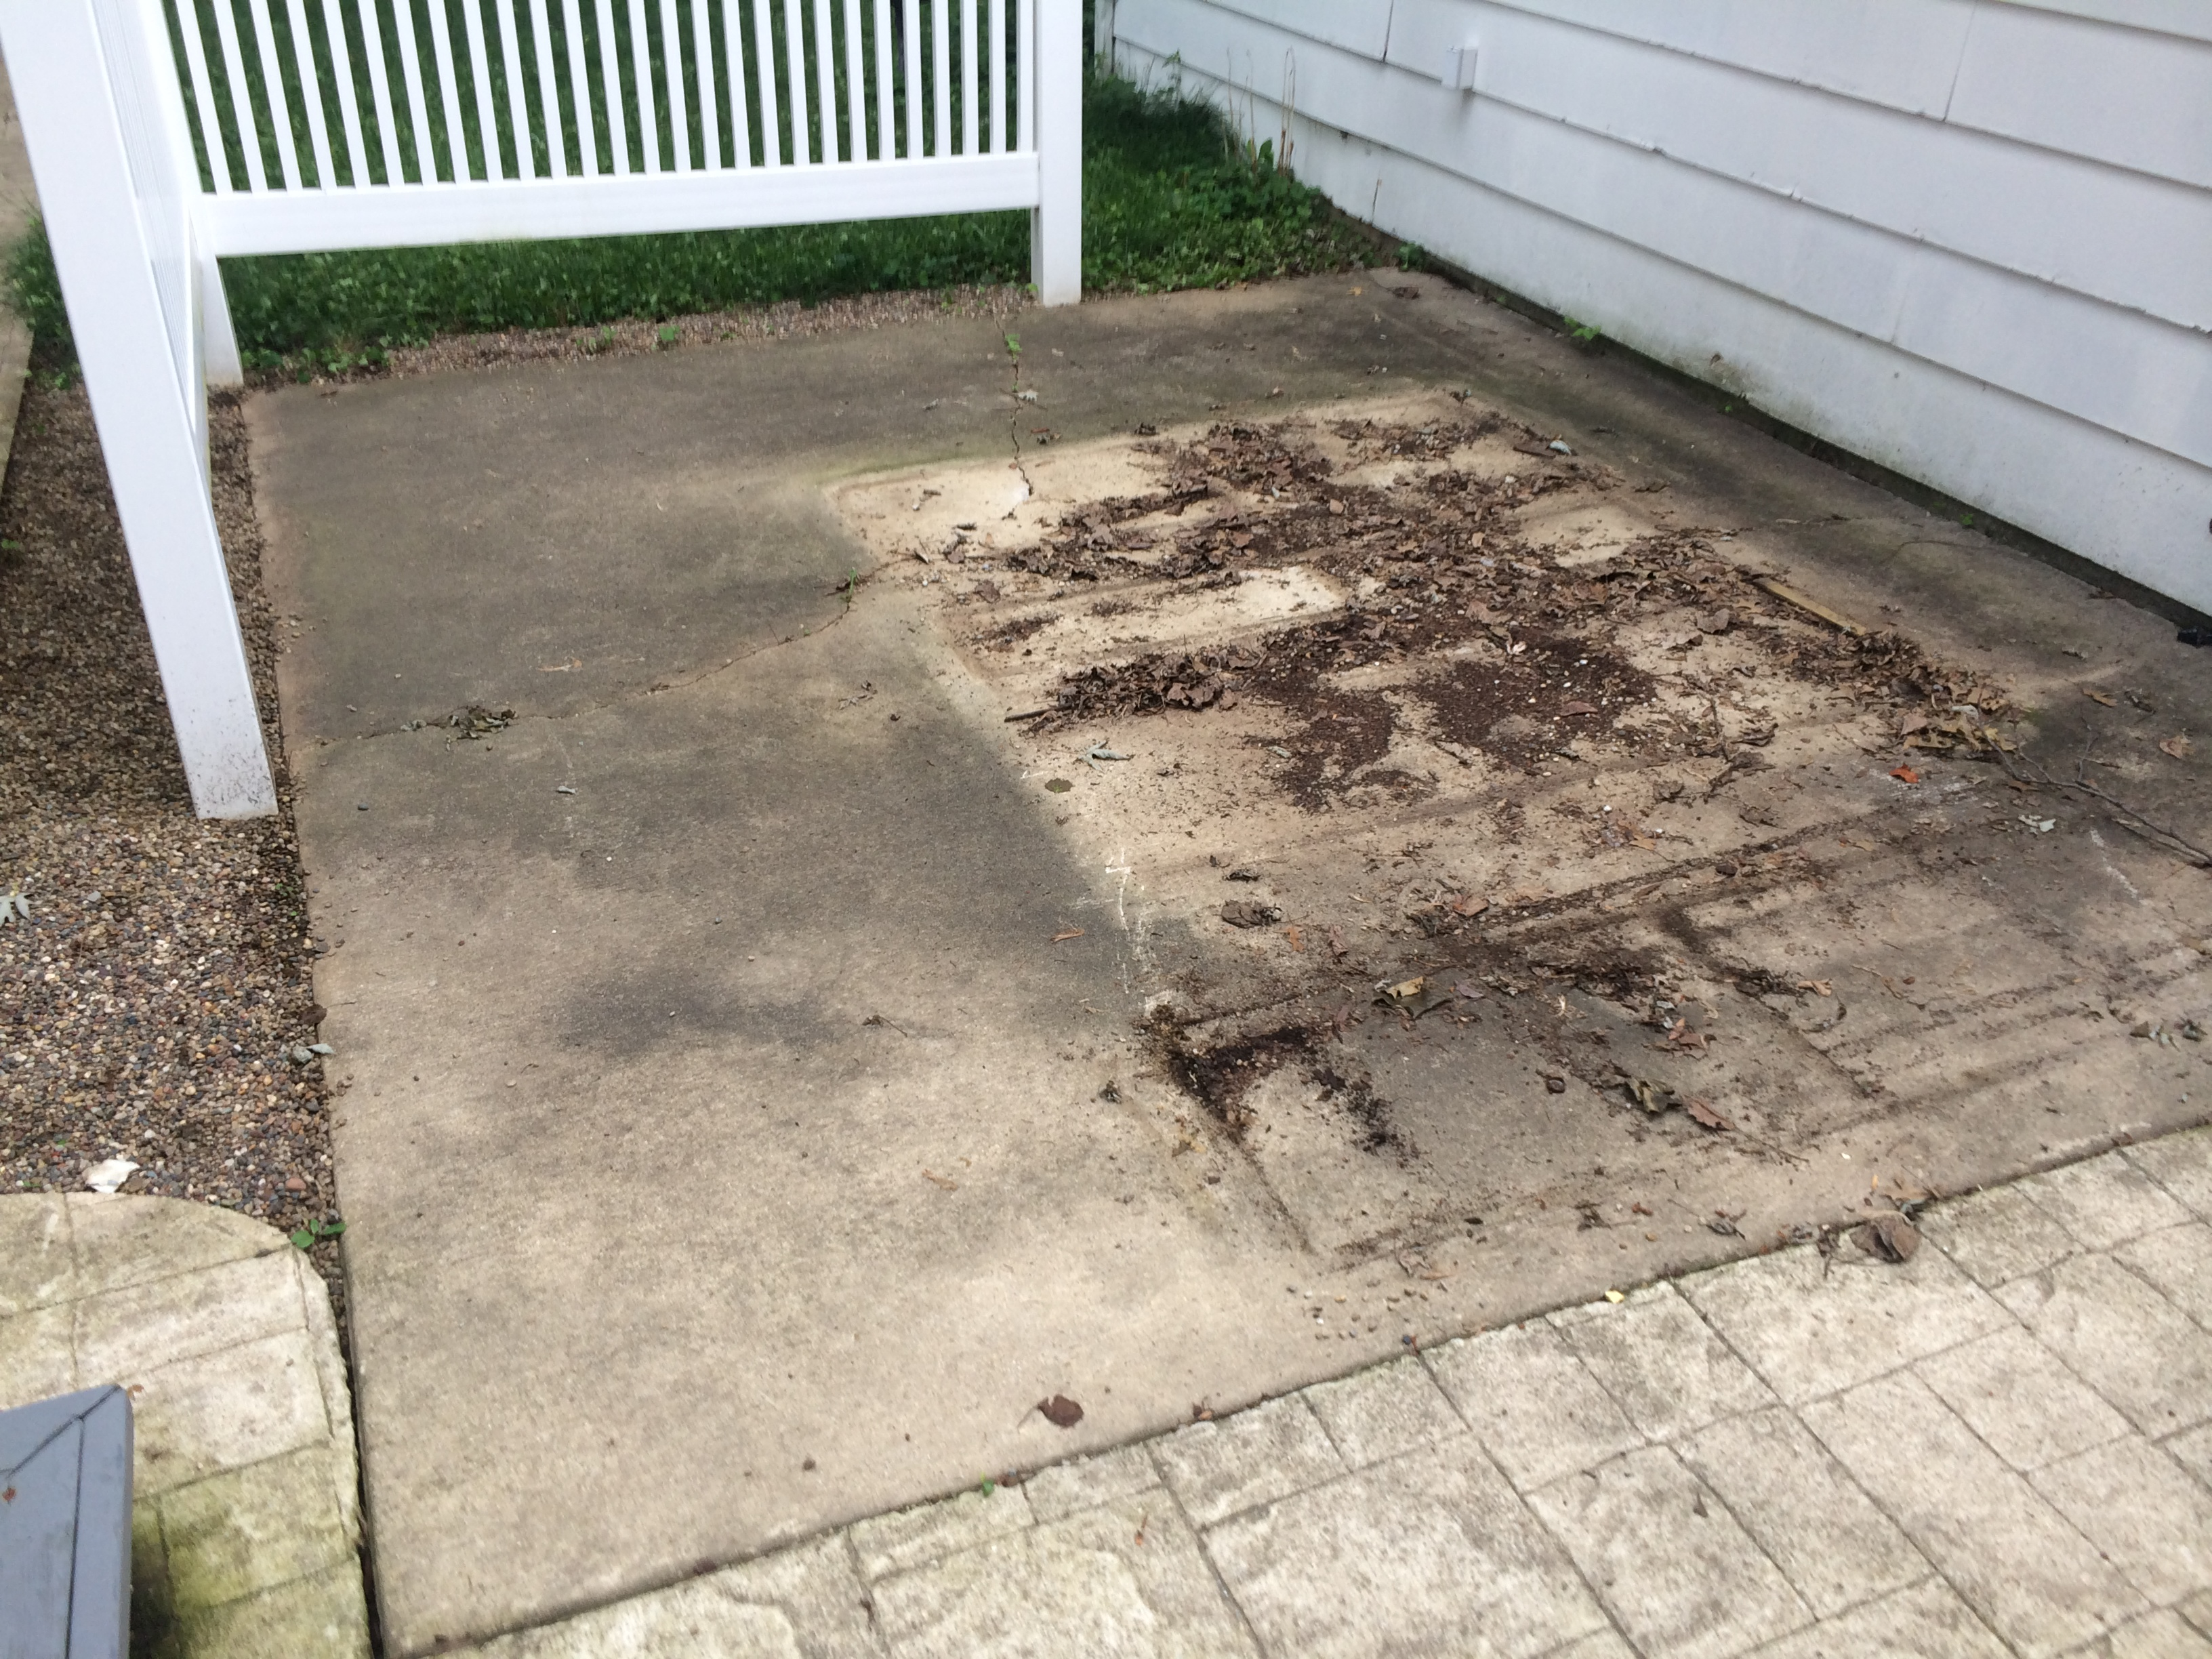 How to clean cement patio how to clean a concrete patio for What to clean concrete with